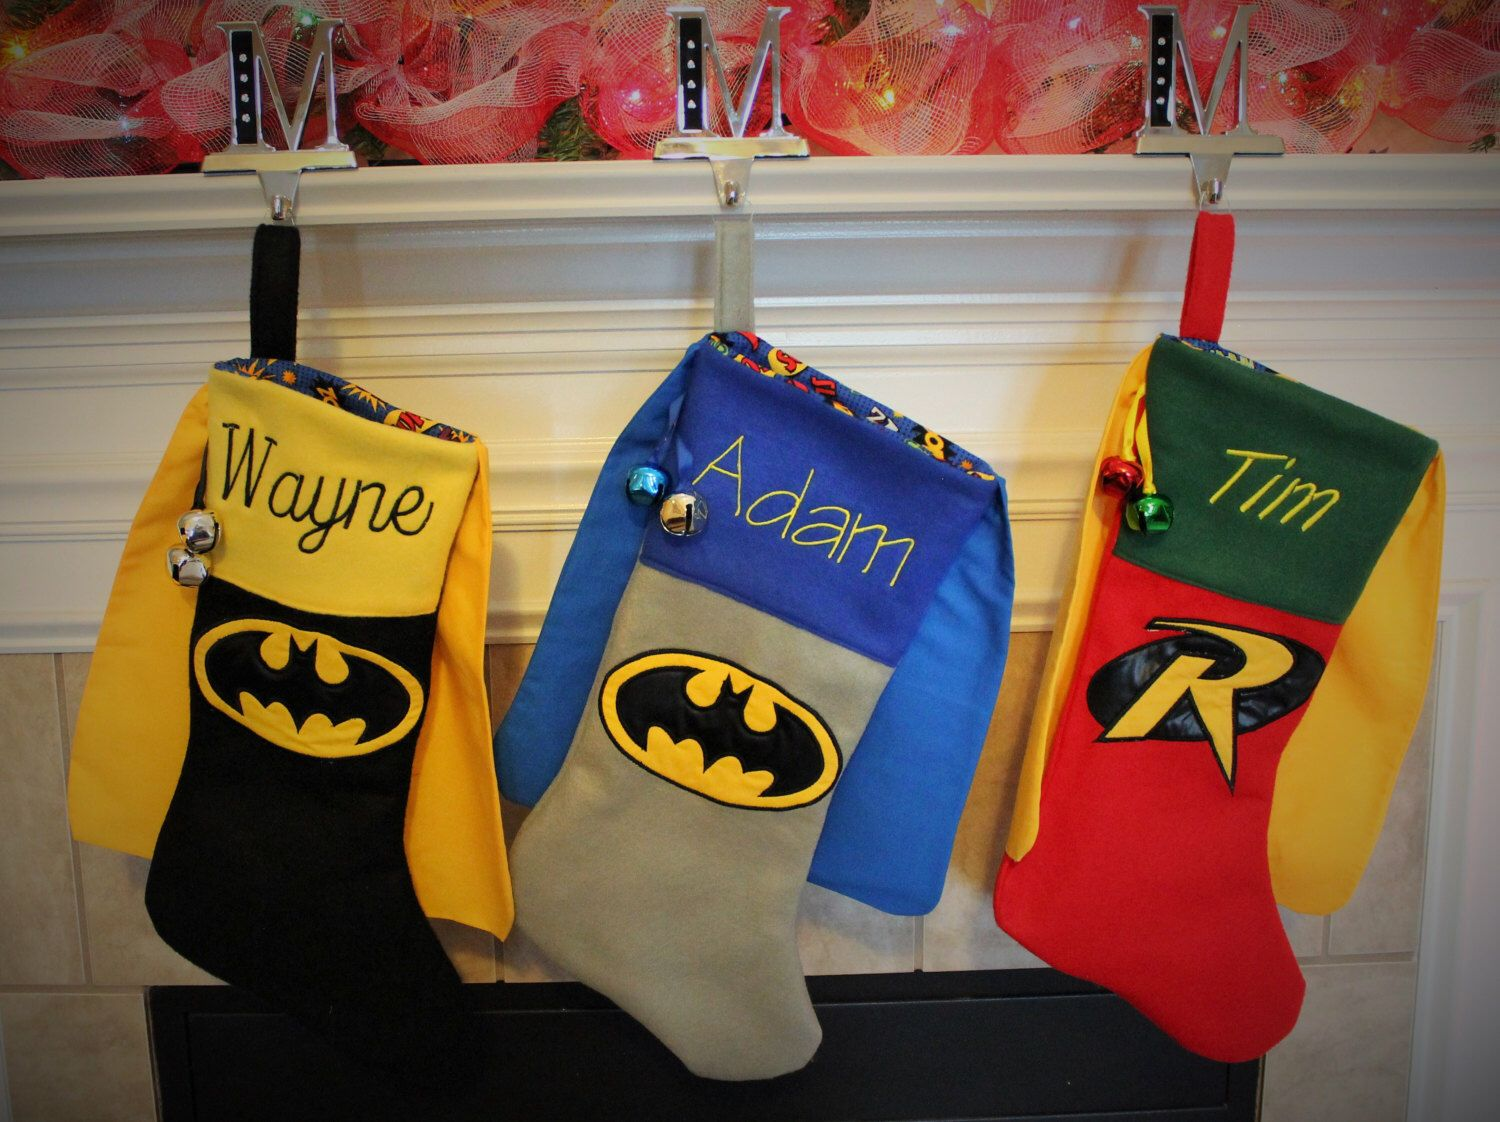 batman and robin christmas stocking embroidered with your name by punkinpatchbags on etsy https